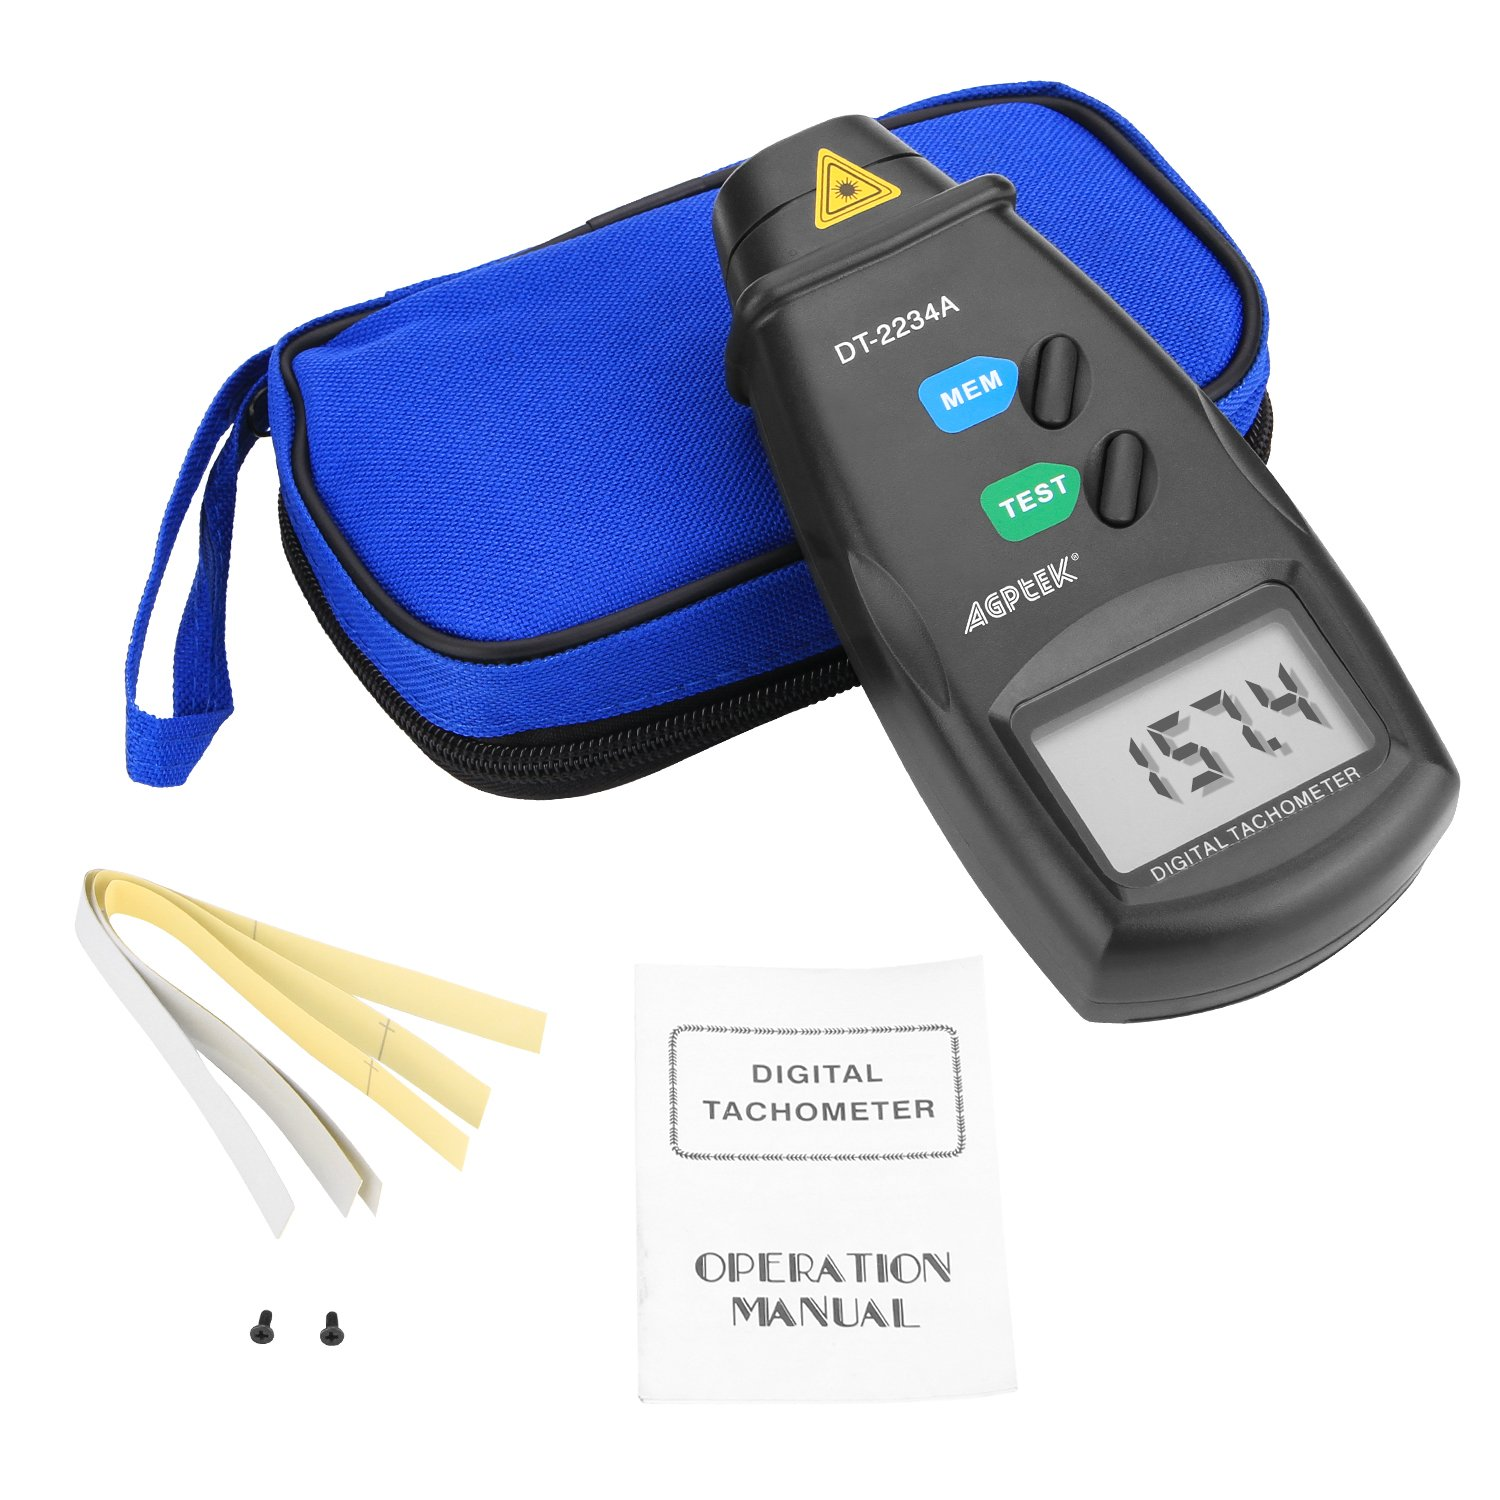 Revision Instruction Non Contact Rotation Photo 2.5-99,999 RPM Accuracy FITNATE 20713A Digital Tachometer RPM Meter With Batteries Included,4 Pack of Reflective Tape